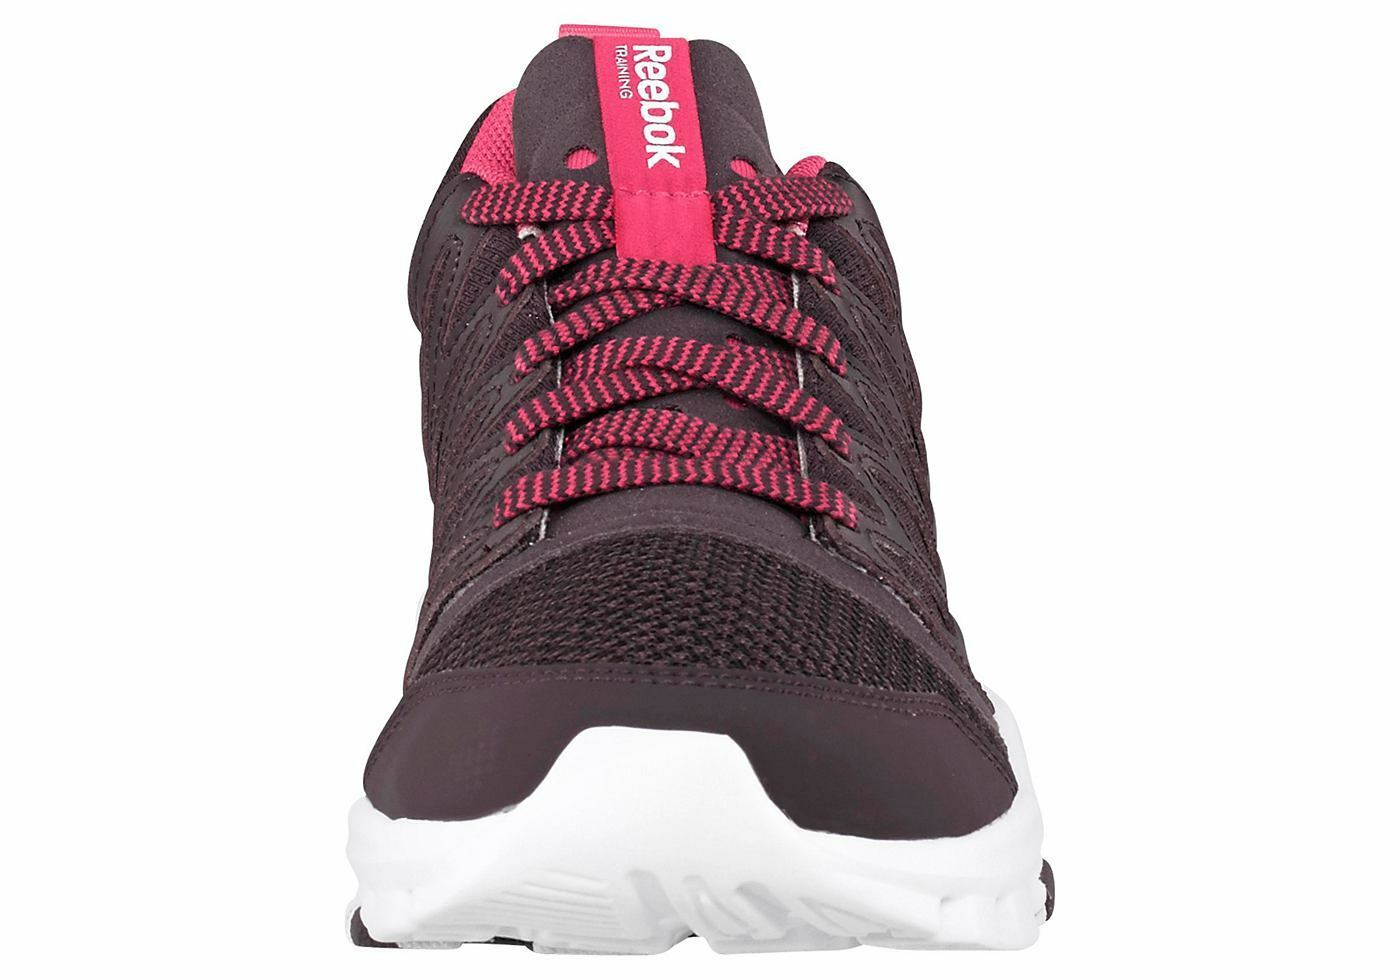 REEBOK SHOE YOURFLEX TRAINETTE RS 5.0 SHOE REEBOK SCHUHE SCHWARZ M47882 ( IN SHOP 69E) 8c4de5